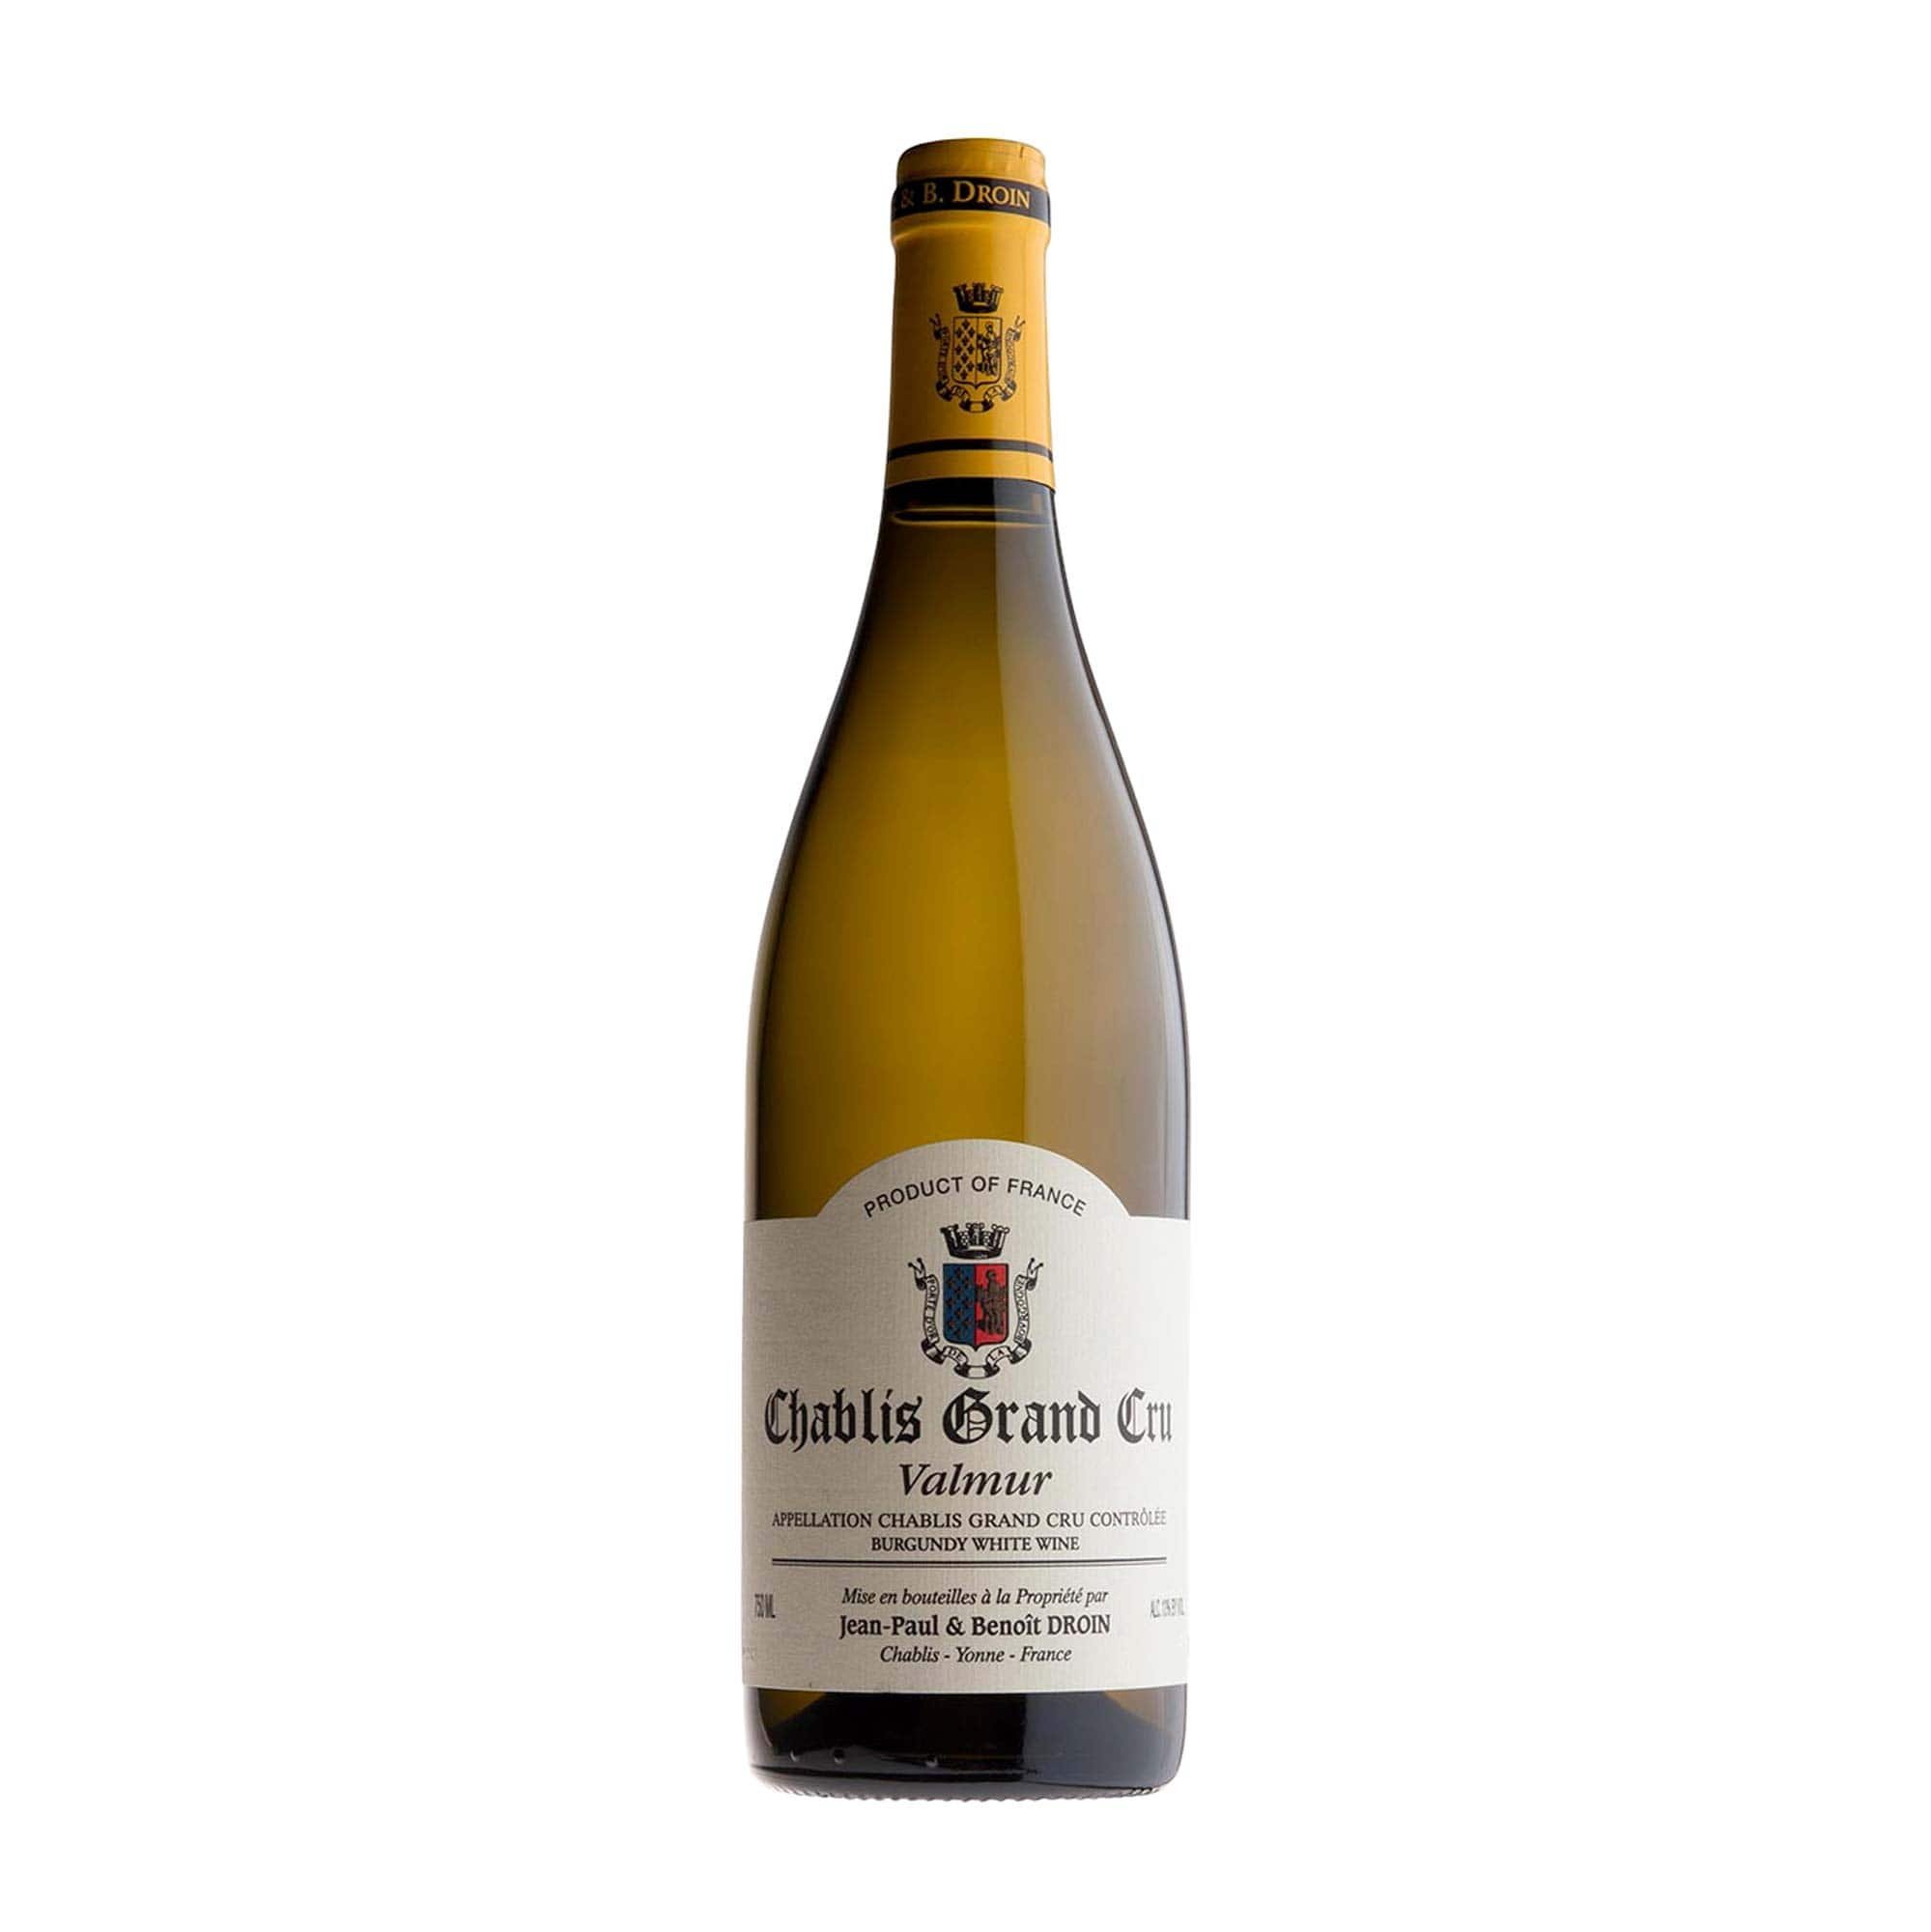 White Wine Chablis Grand Cru 'Valmur' Droin 2019 EP (case of 6)